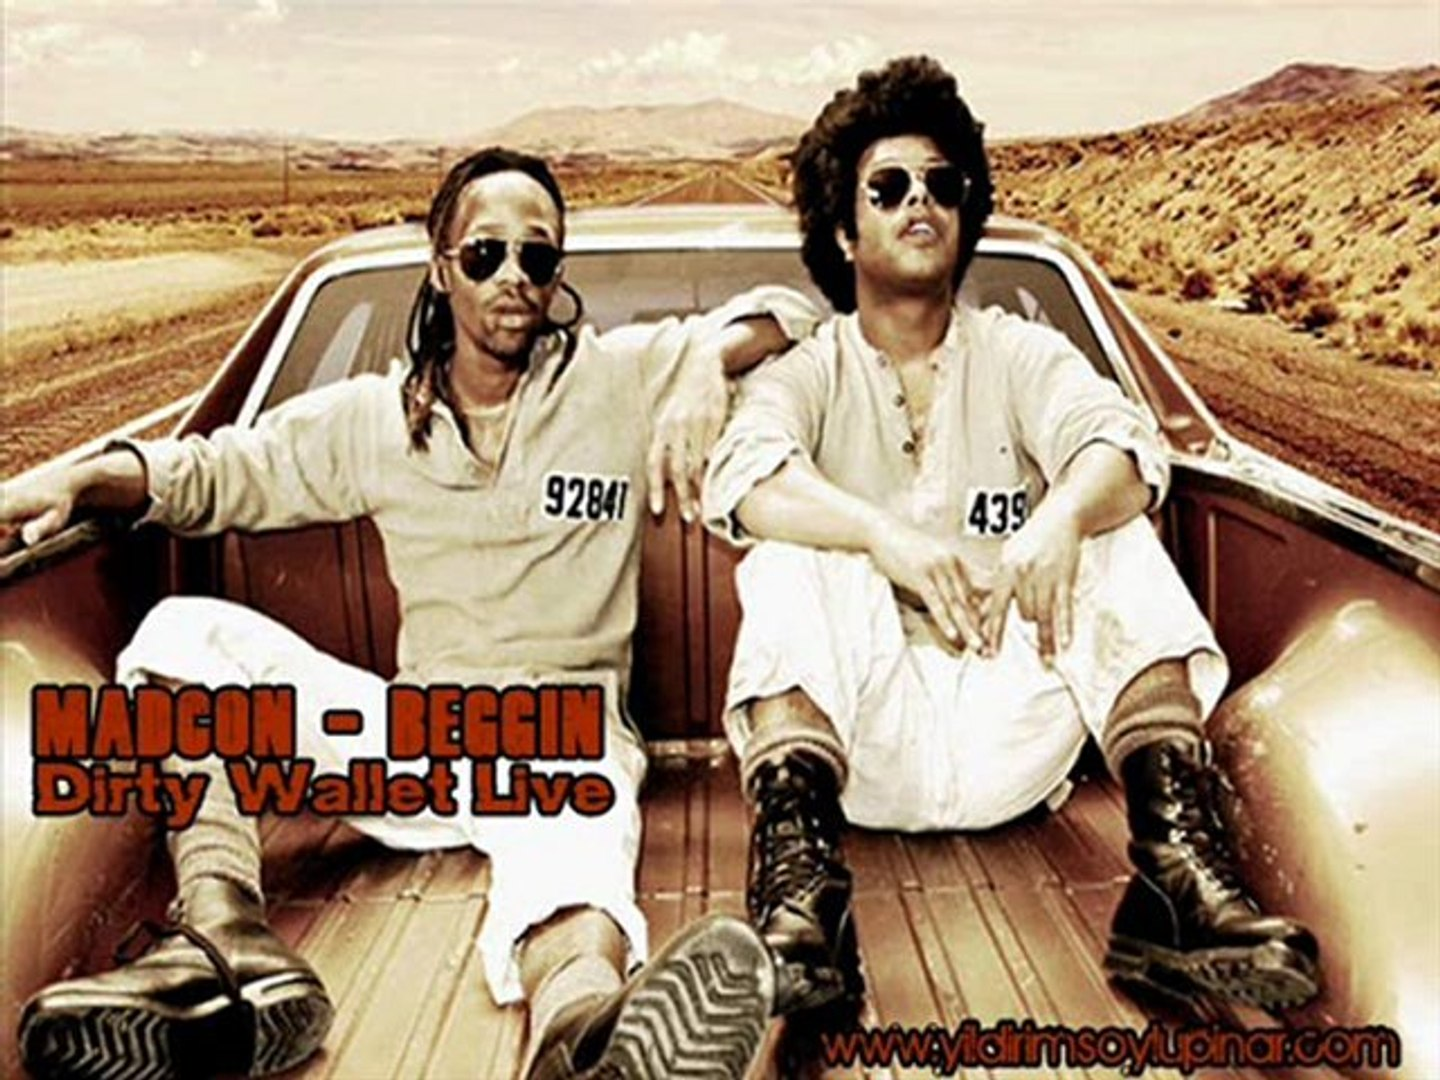 Madcon - Beggin (Dance Remix) ( Dirty Wallet Live ) - Dailymotion Video